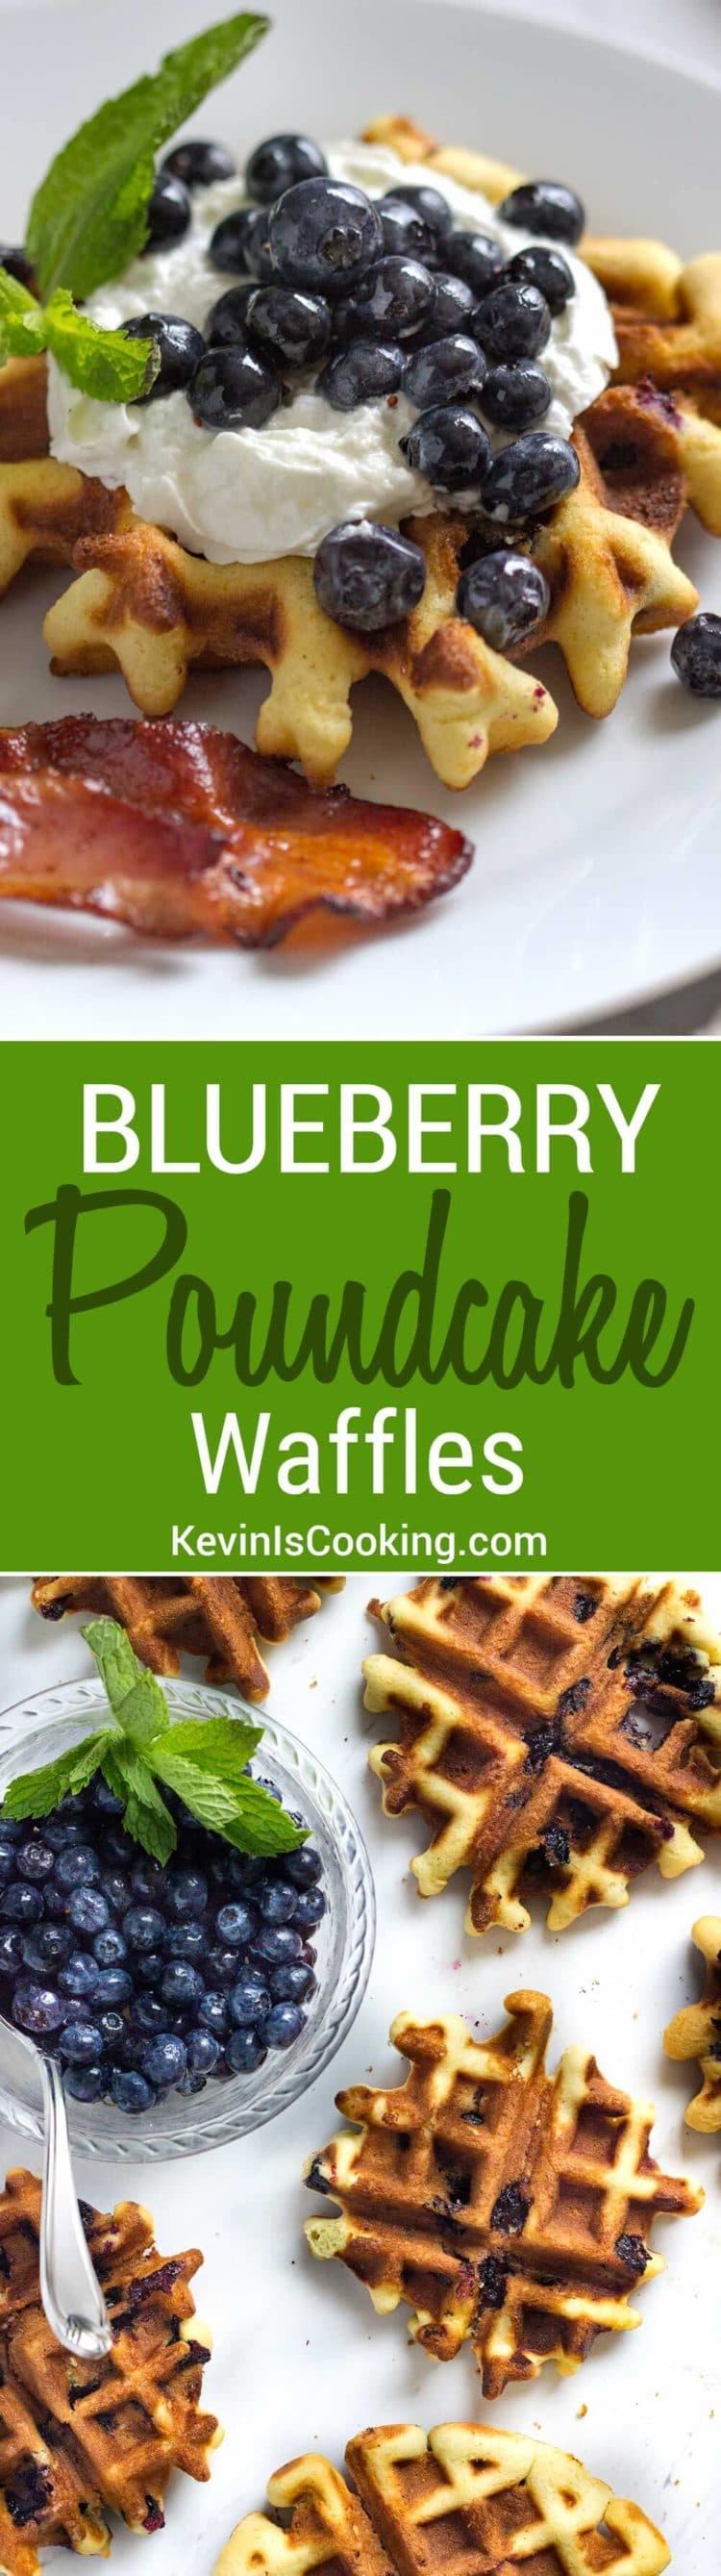 Talk about being treated to an amazing breakfast, these Blueberry Poundcake Waffles will blow your socks off. My decadent surprise for any weekend breakfast treat!